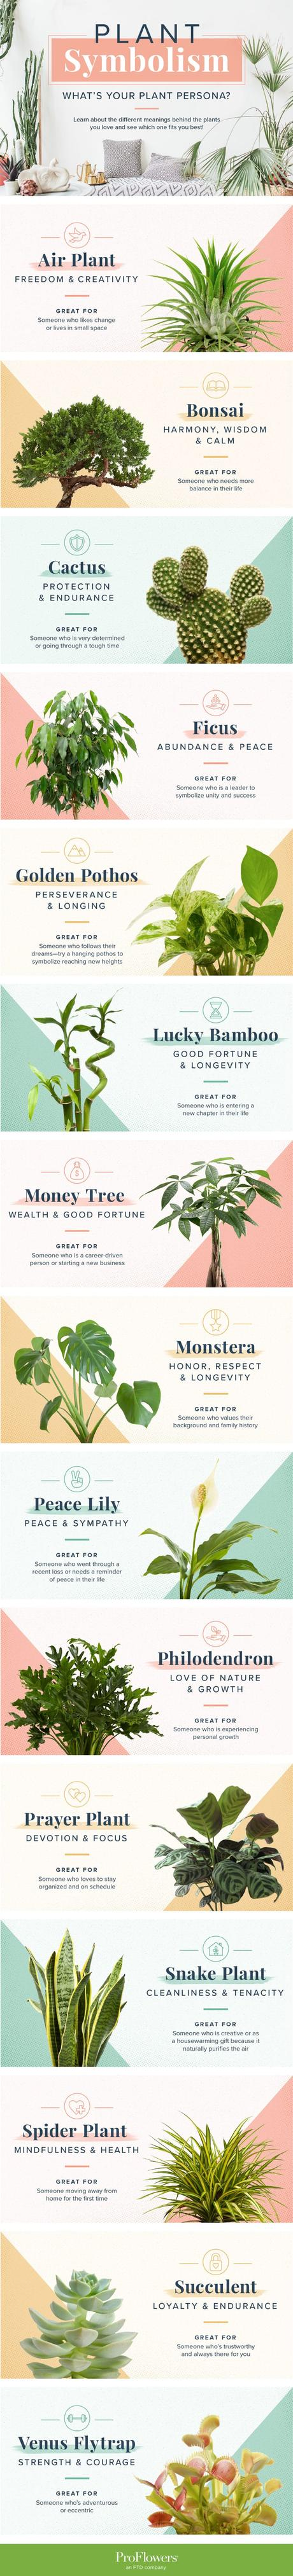 Image: Plant Symbolism Guide: 31 Plants for Every Personality